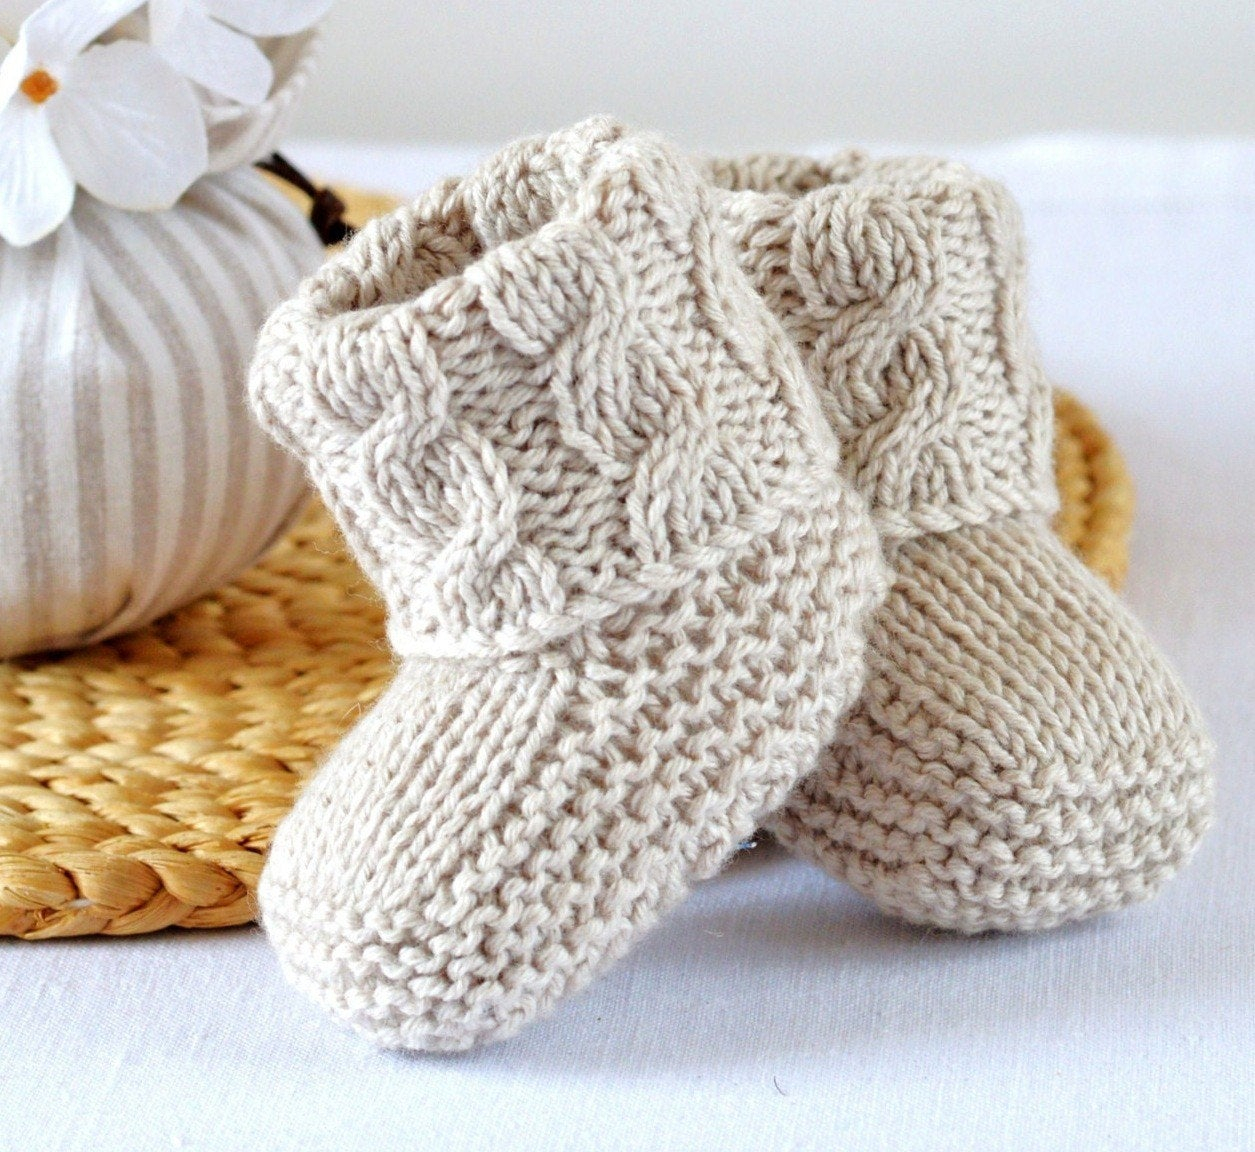 Basic Baby Booties Knitting Pattern Easy Booties Knitting Pattern Ba Cable Booties Knitting Photo Tutorial Pdf Digital File